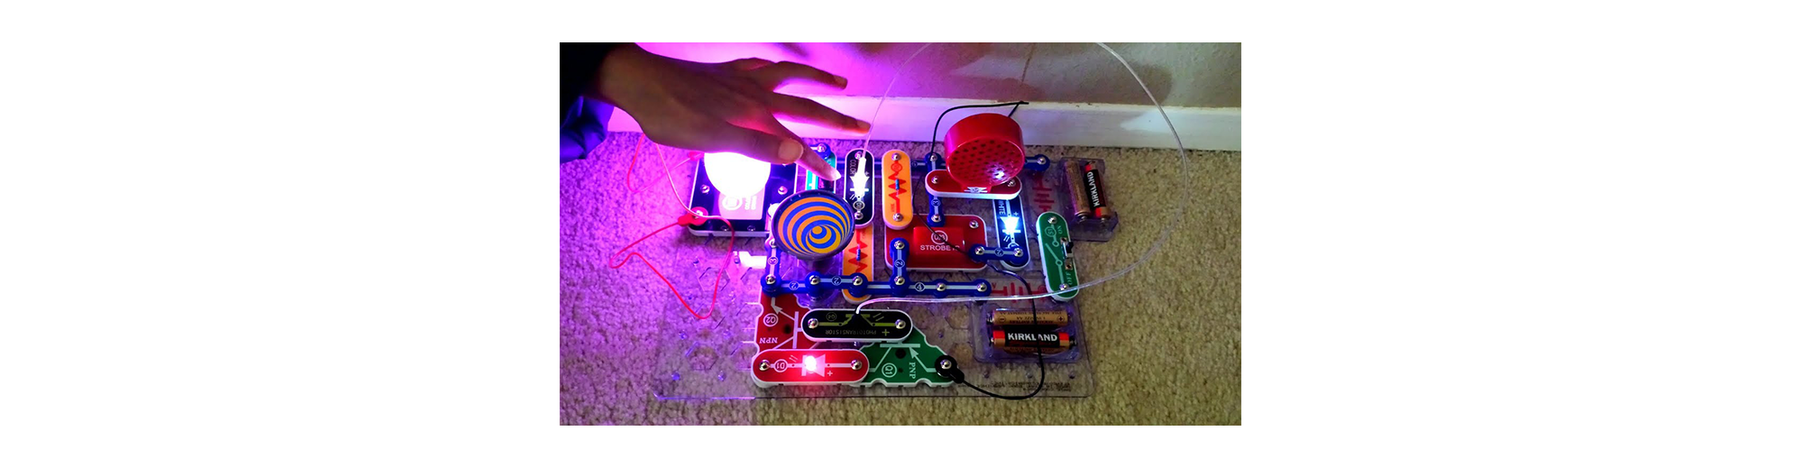 What Else Can I do With Elenco Snap Circuits?